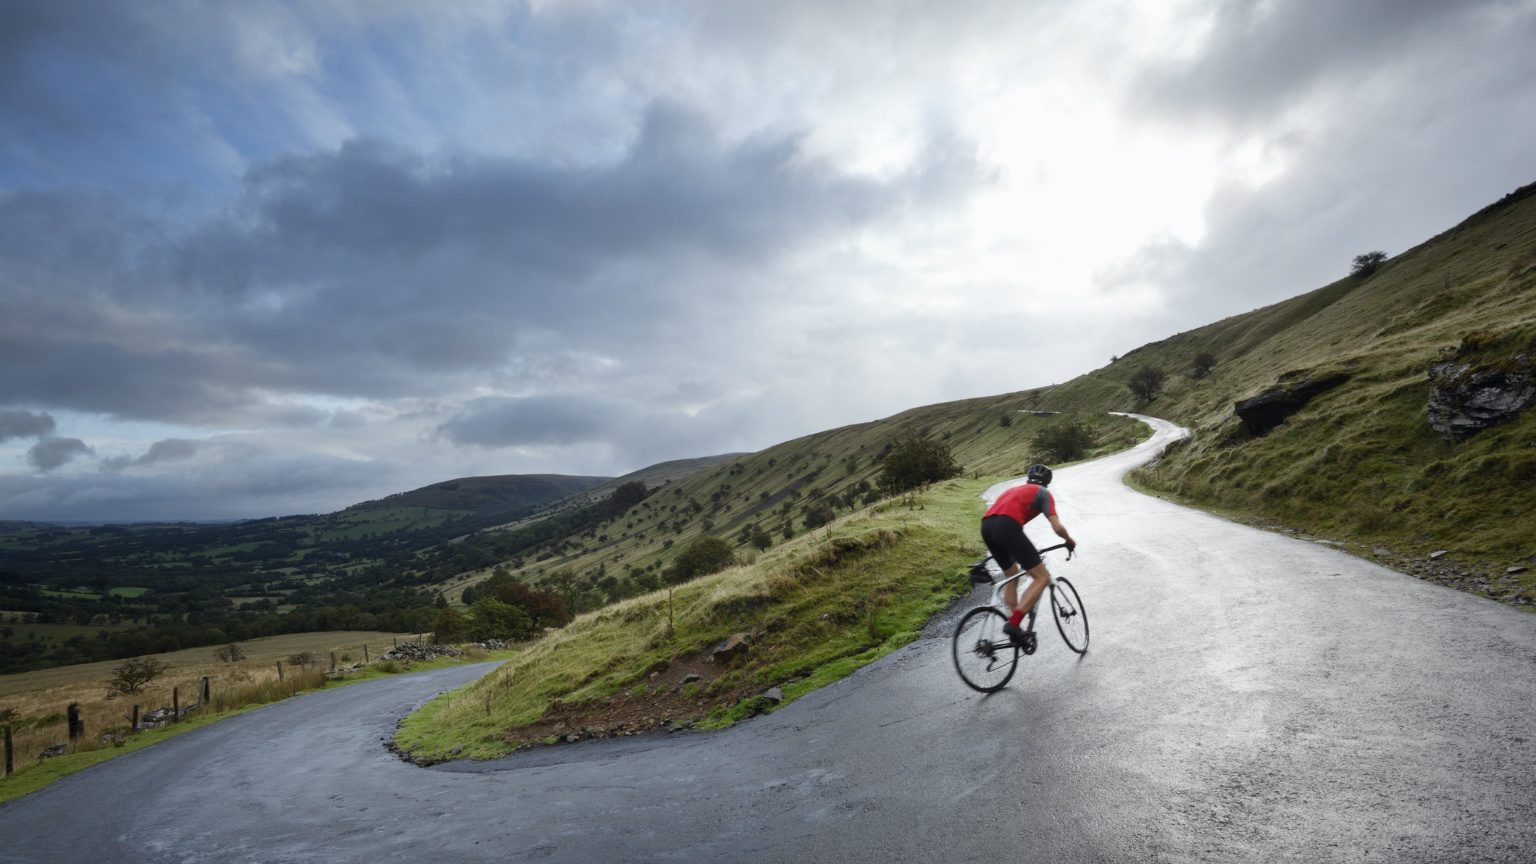 Road Cycling Climbing Hairpin Bends Up Hillside